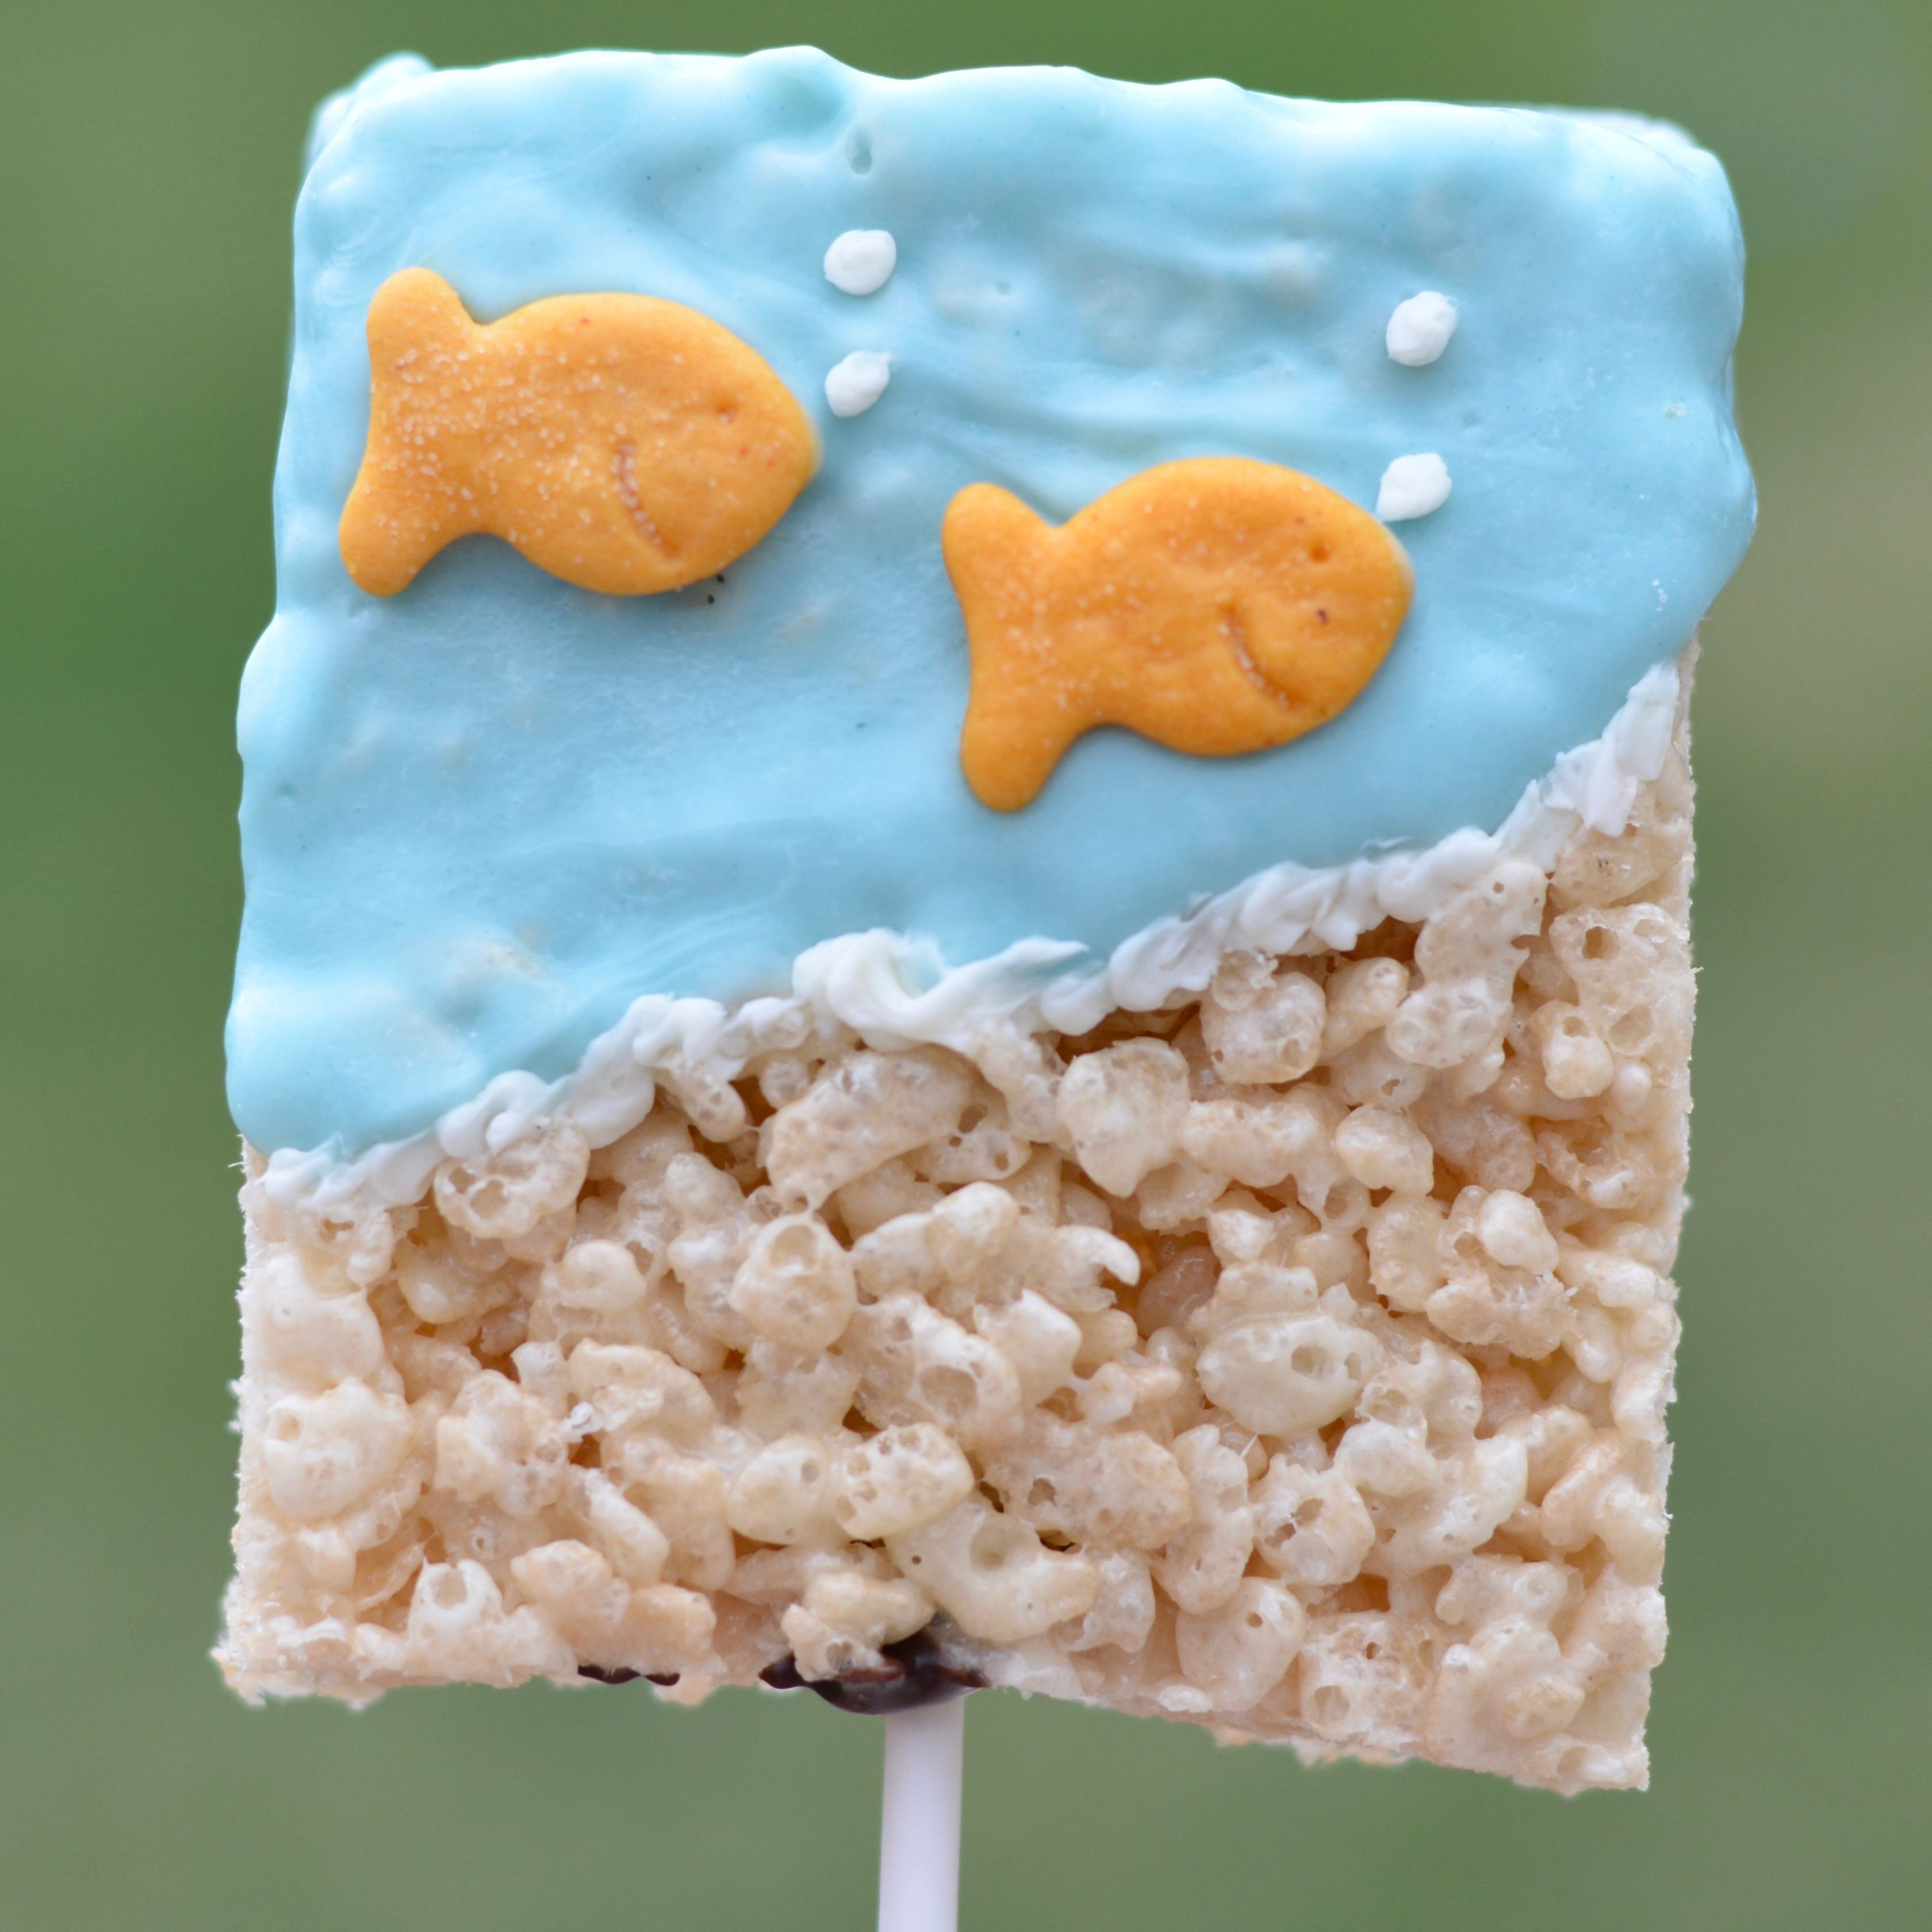 Birthday Party Favors Kids Party Easy Rice Krispie Treats With Goldfish The Oven Light